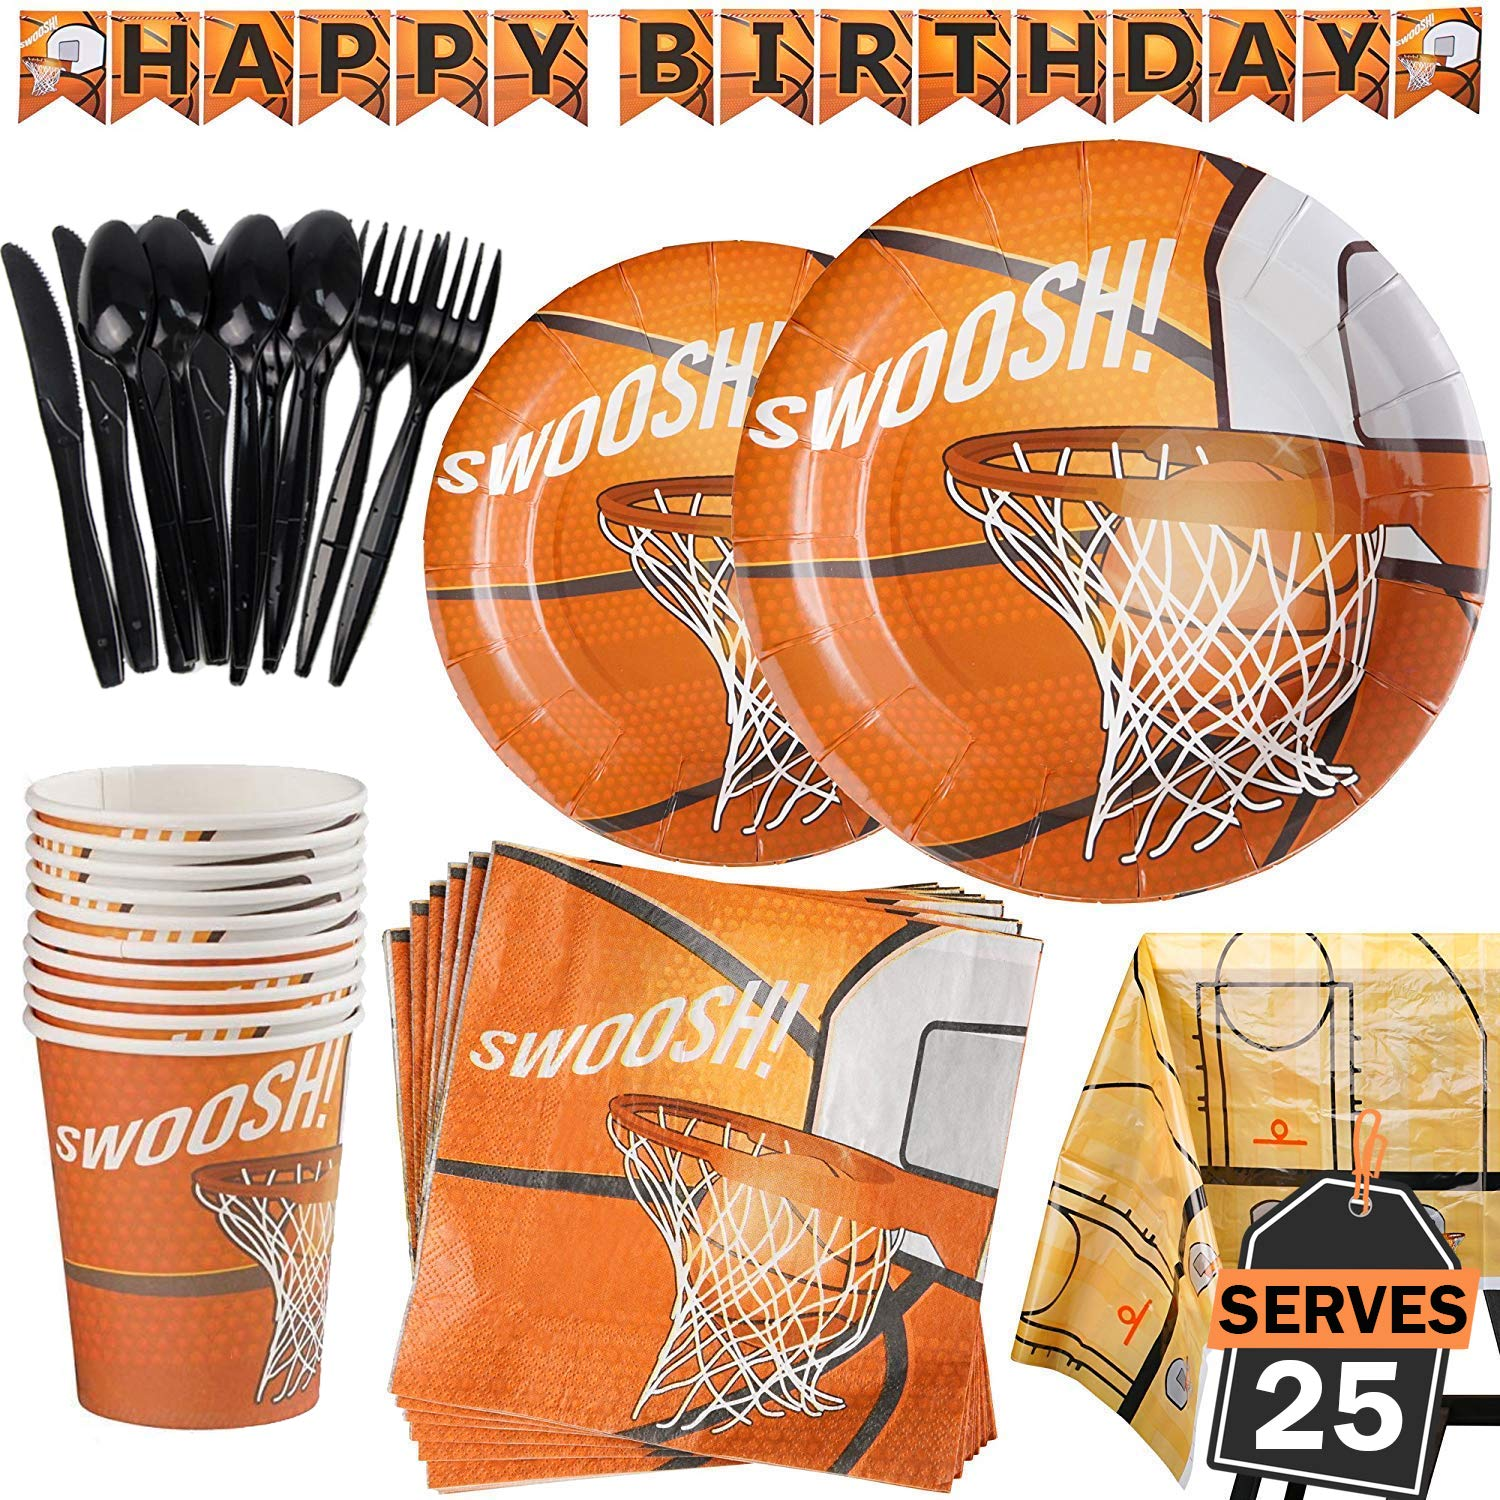 177 Piece Basketball Party Supplies Set Including Banner, Plates, Cups, Napkins, Cutlery, and Tablecloth, Serves 25 by Scale Rank